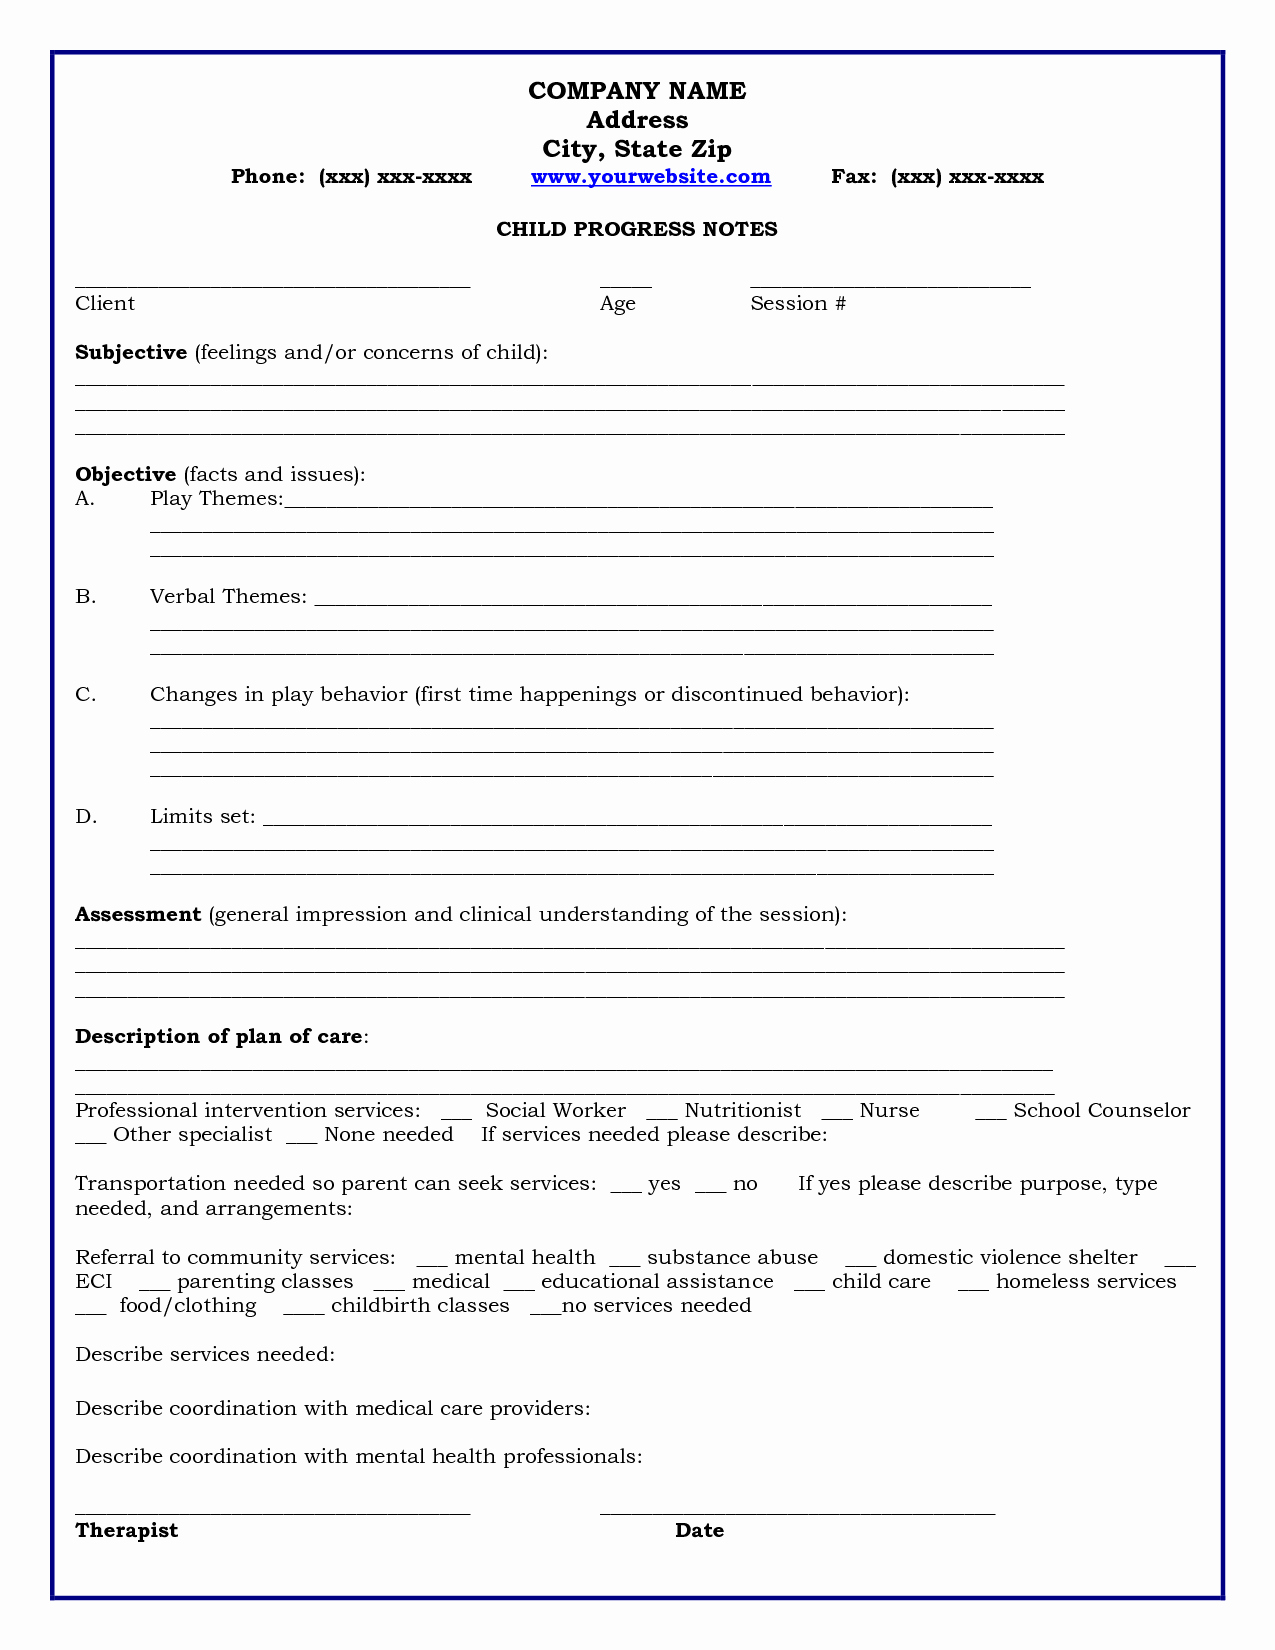 Group therapy Notes Template Inspirational Home Child Progress Notes Medicaid Child Progress